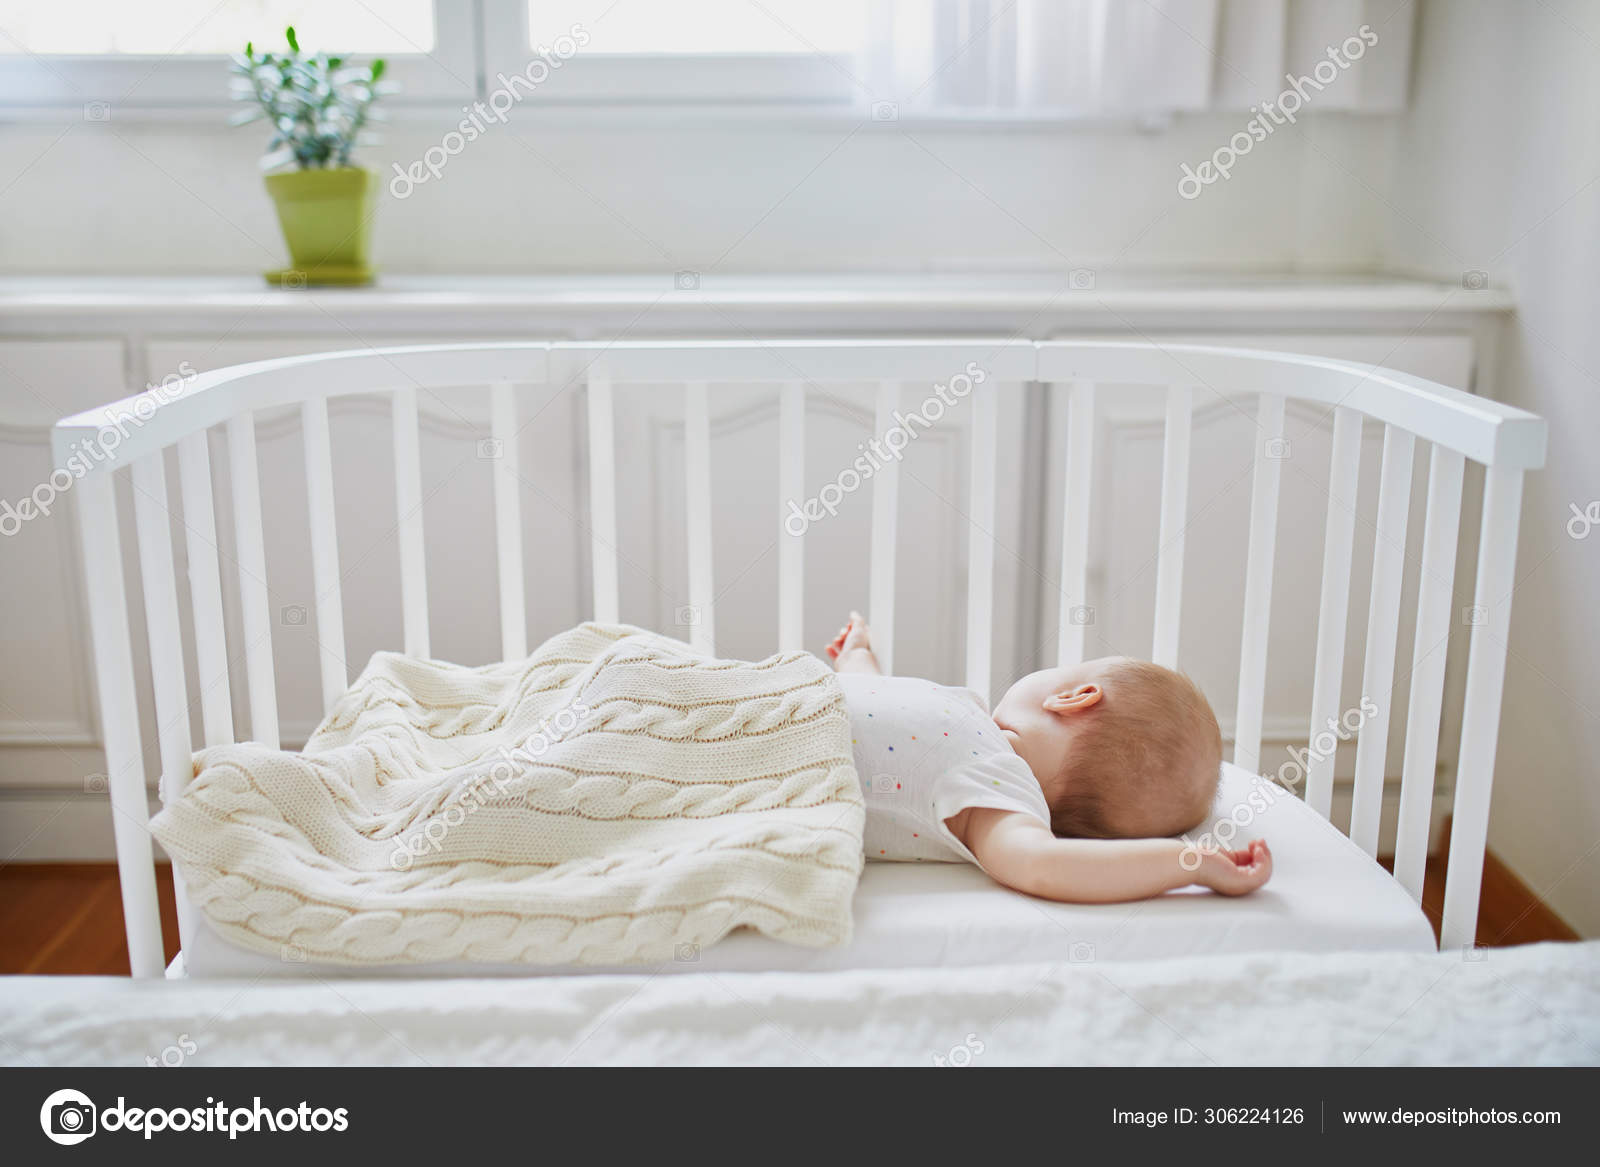 Baby Sleeping In Co Sleeper Crib Attached To Parents Bed Stock Photo C Encrier 306224126